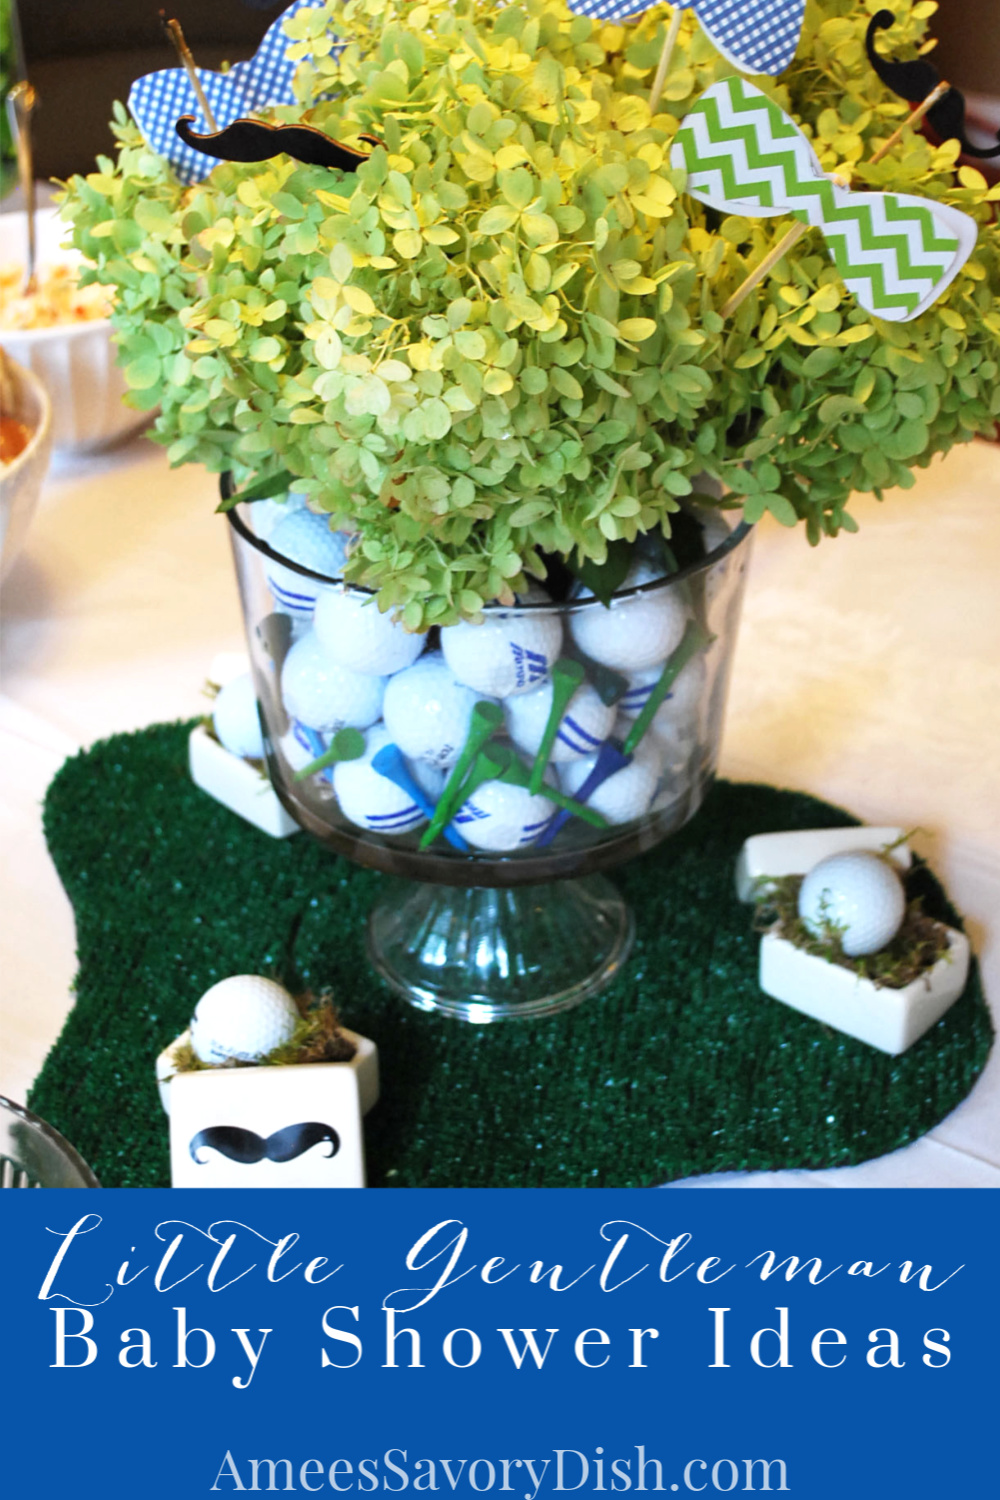 Fun decorating and recipe ideas to inspire a little man themed baby shower #babyshower #littlemanbabyshower #babyshowerideas via @Ameessavorydish